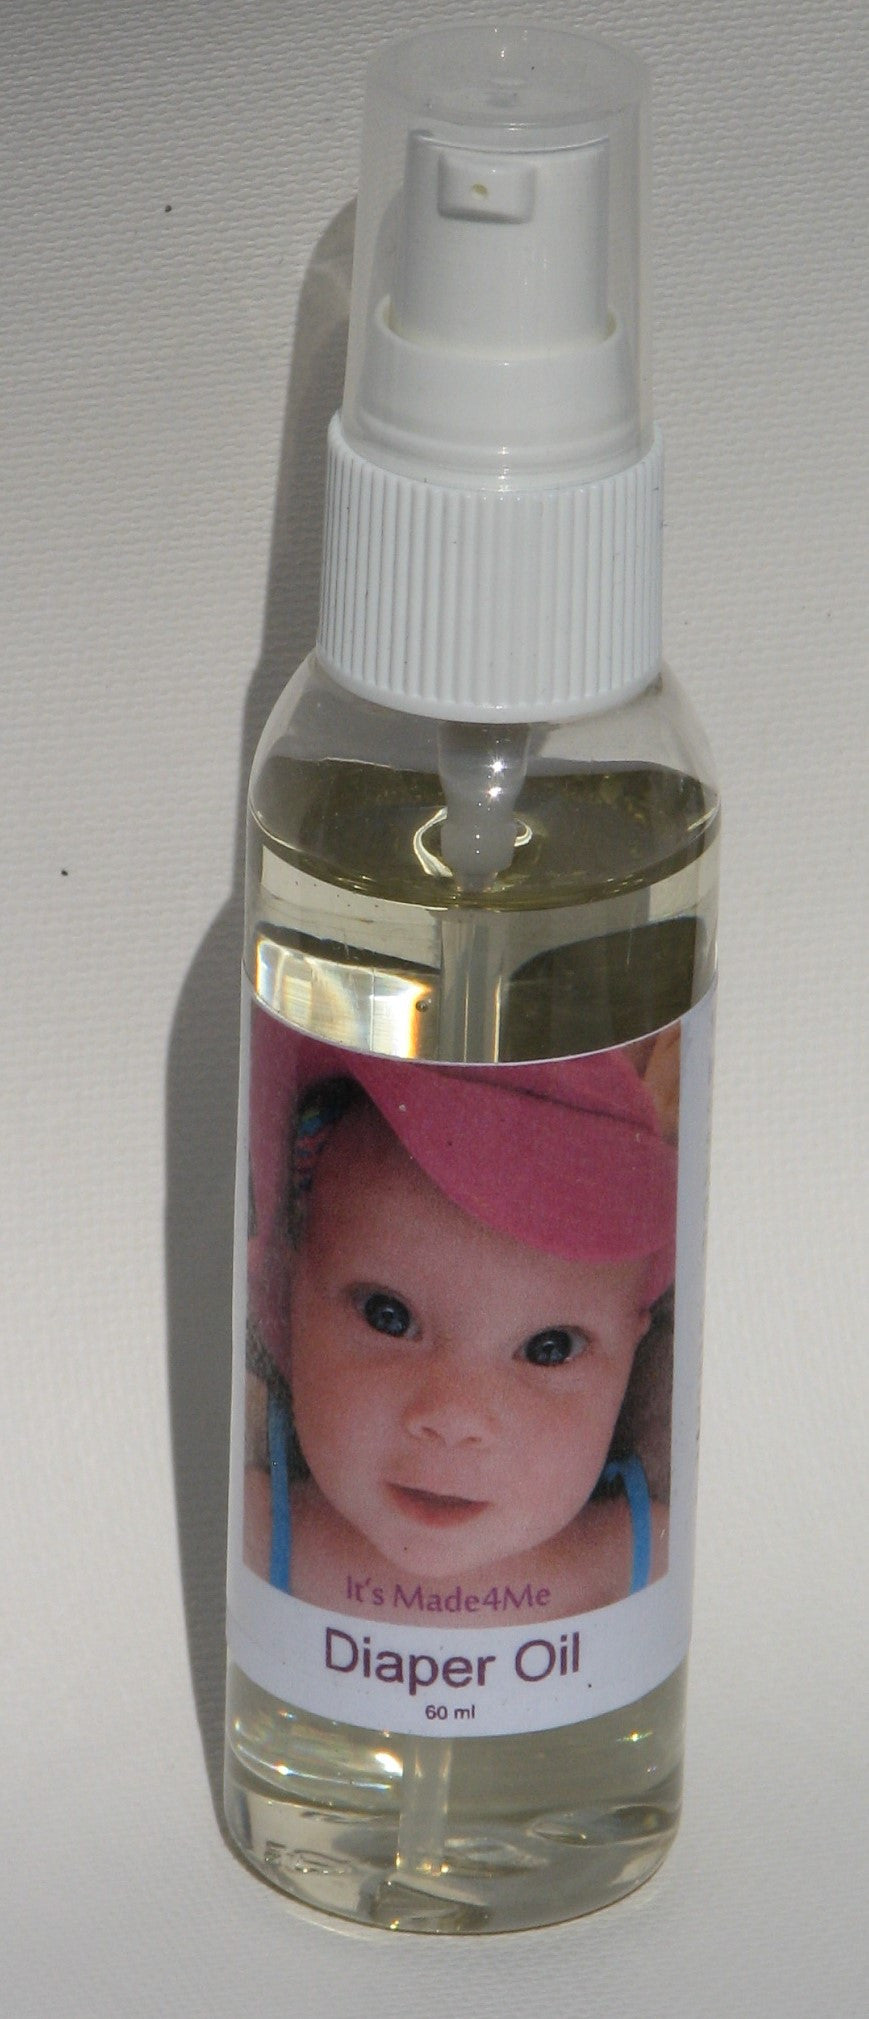 Baby Diaper Oil 60ml